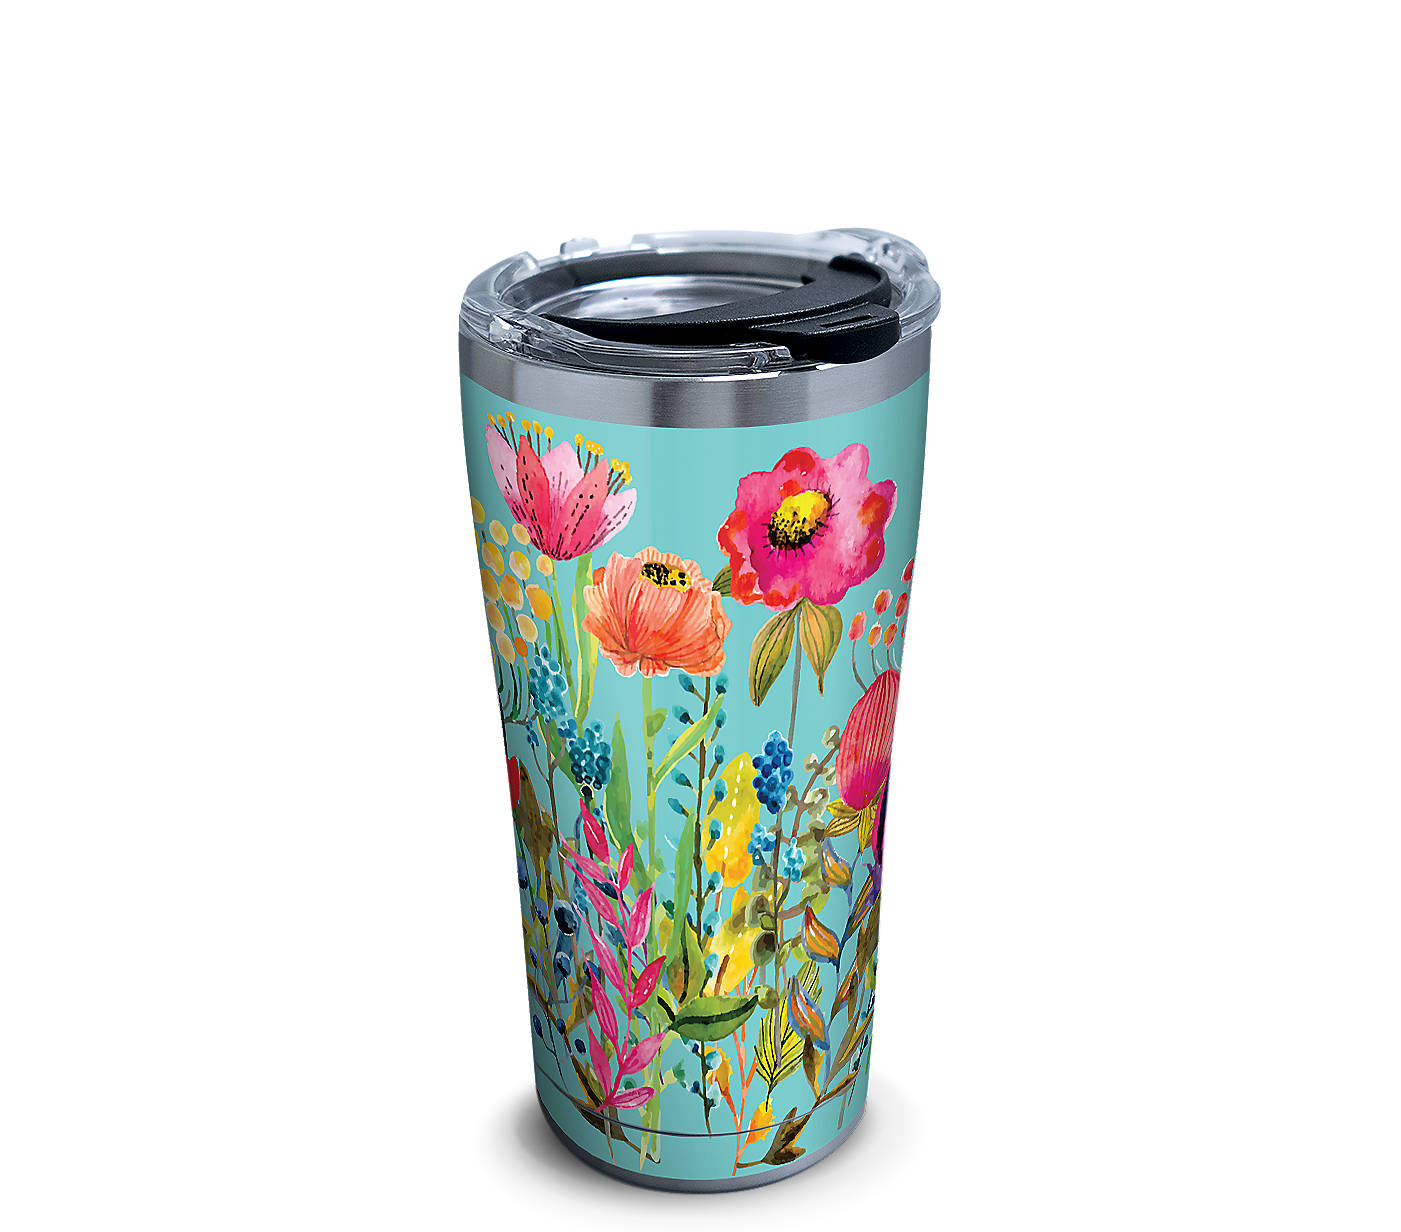 4e96f3030c0 Watercolor Wildflowers Stainless Steel With Hammer Lid | Tervis ...